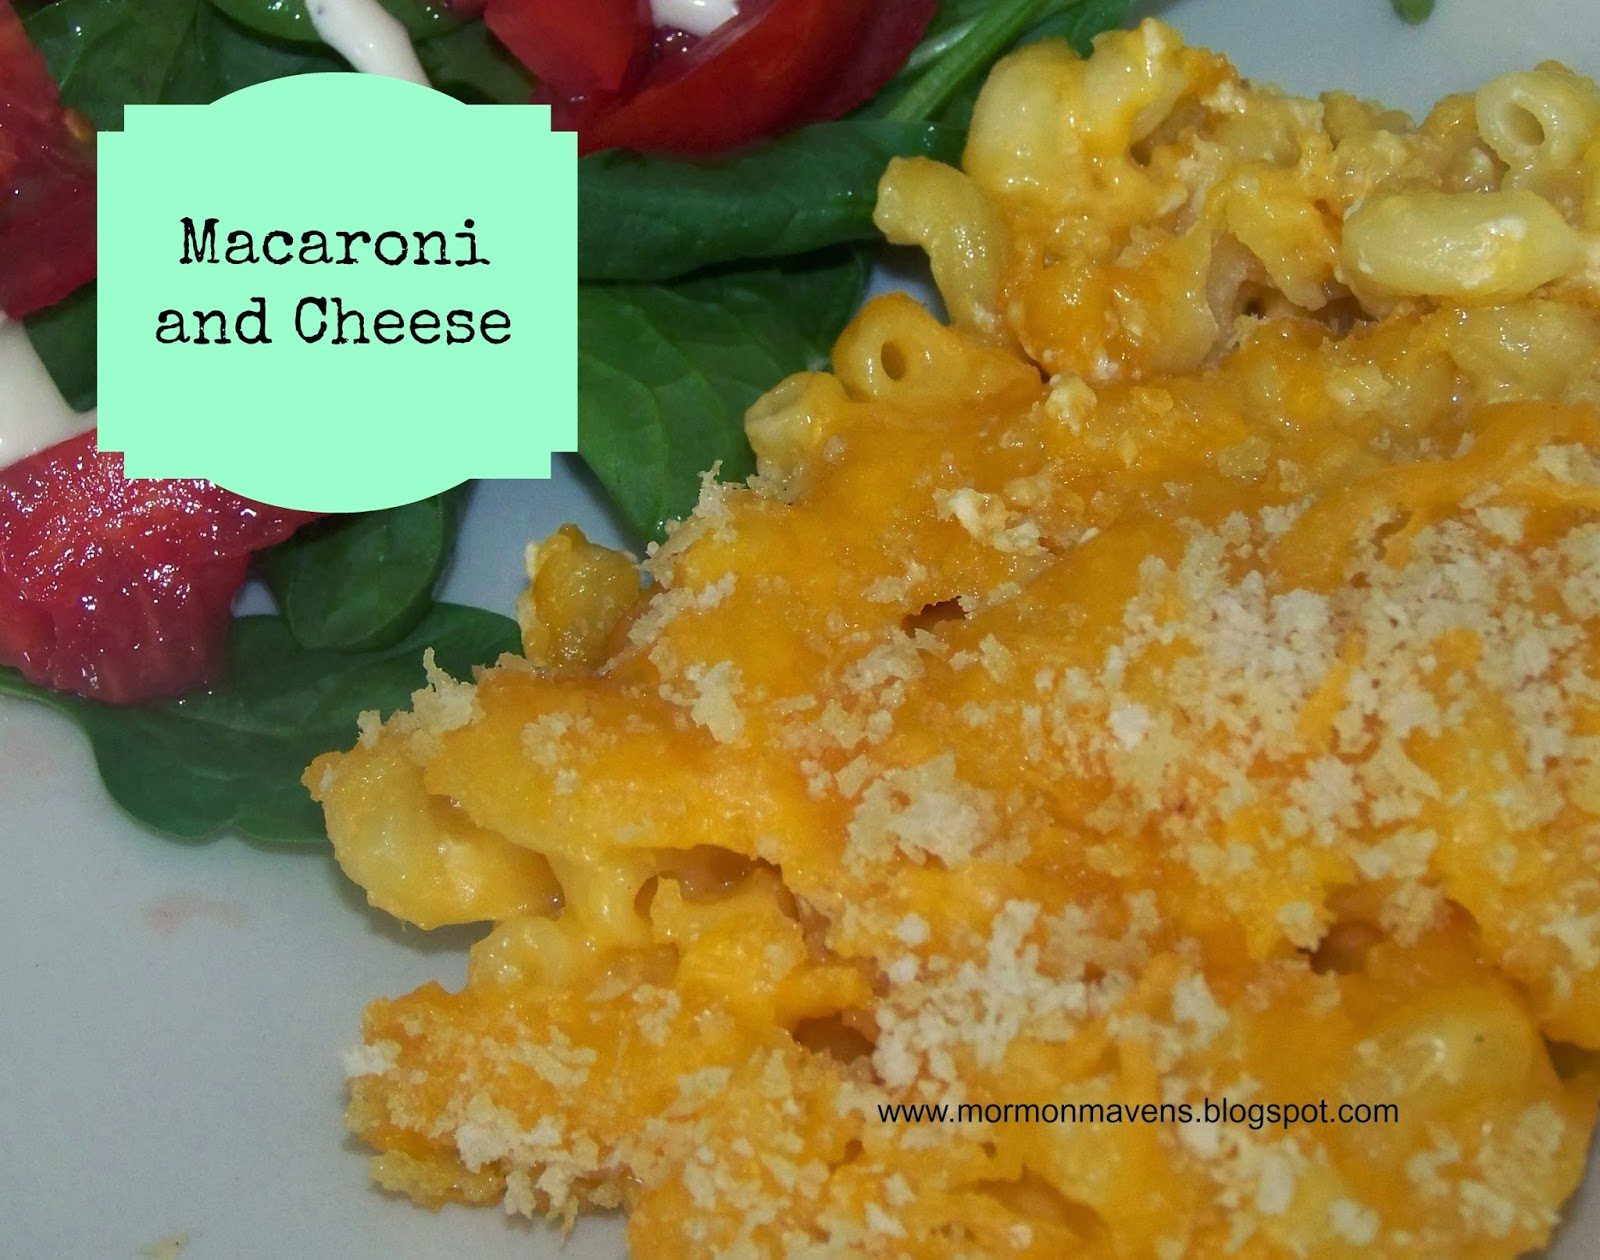 Mormon Mavens in the Kitchen: Baked Macaroni and Cheese